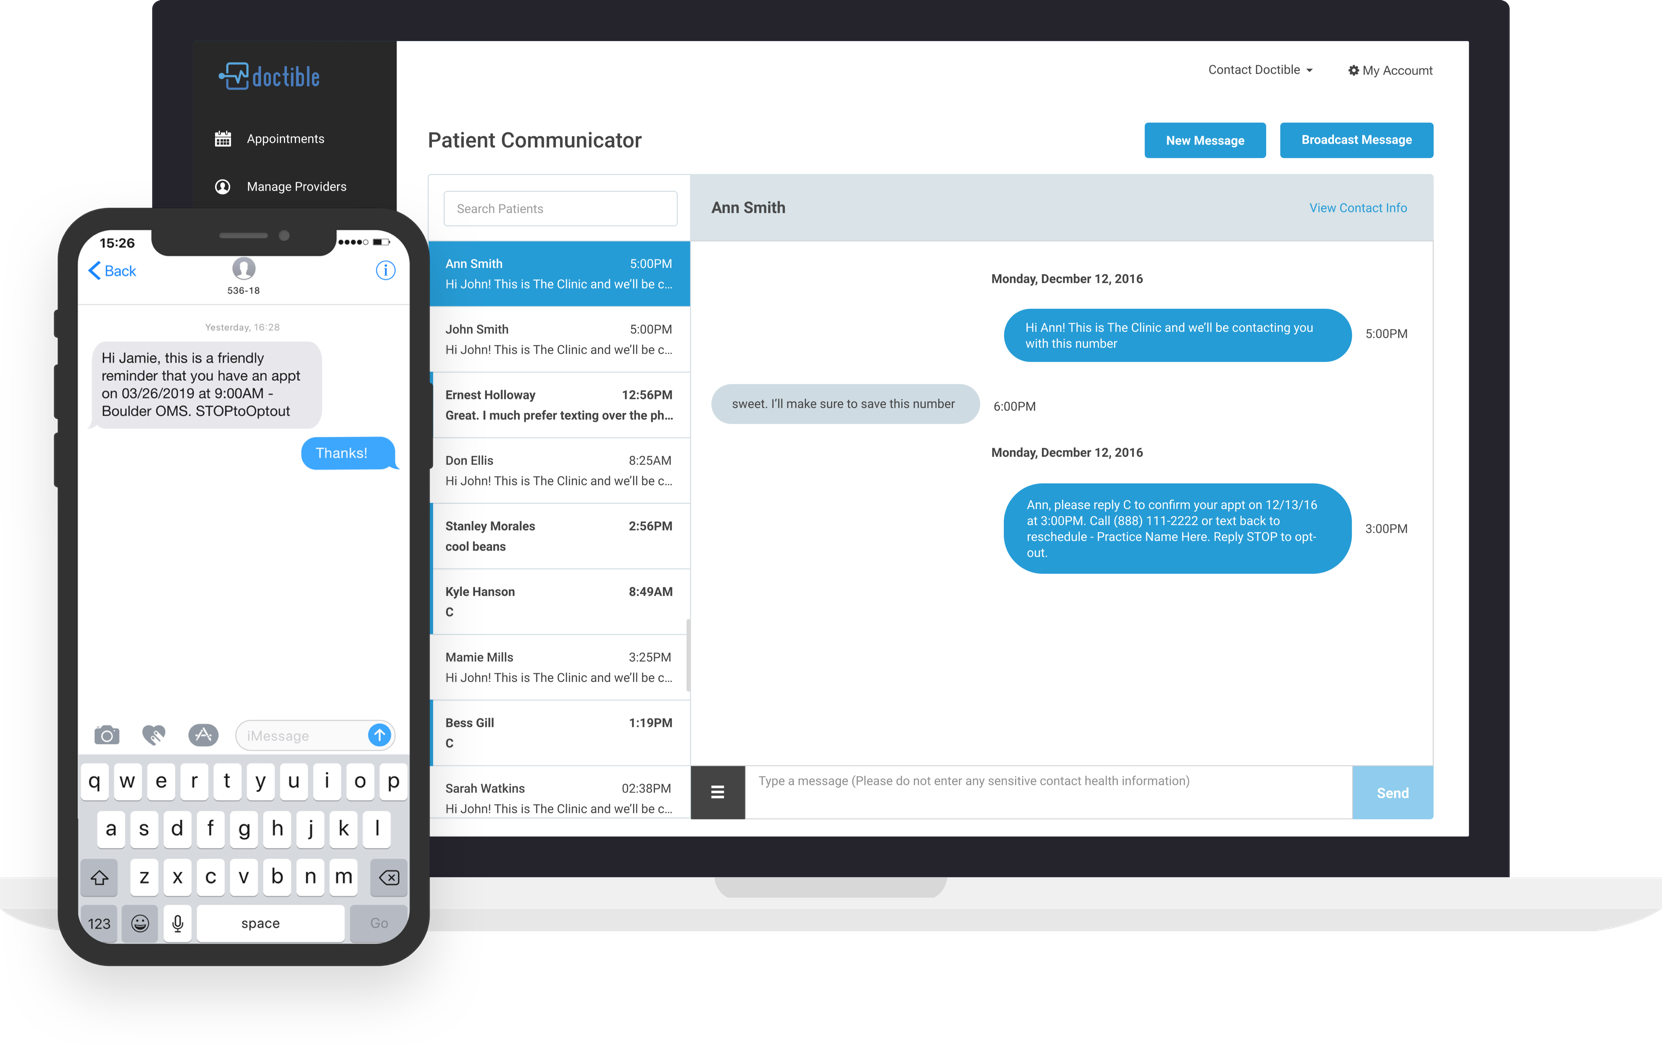 Shows Doctible Patient Communicator's dashboard with a message sent to a patient, along with a depiction of a cell phone demonstrating how the message will appear when it is received by the patient.